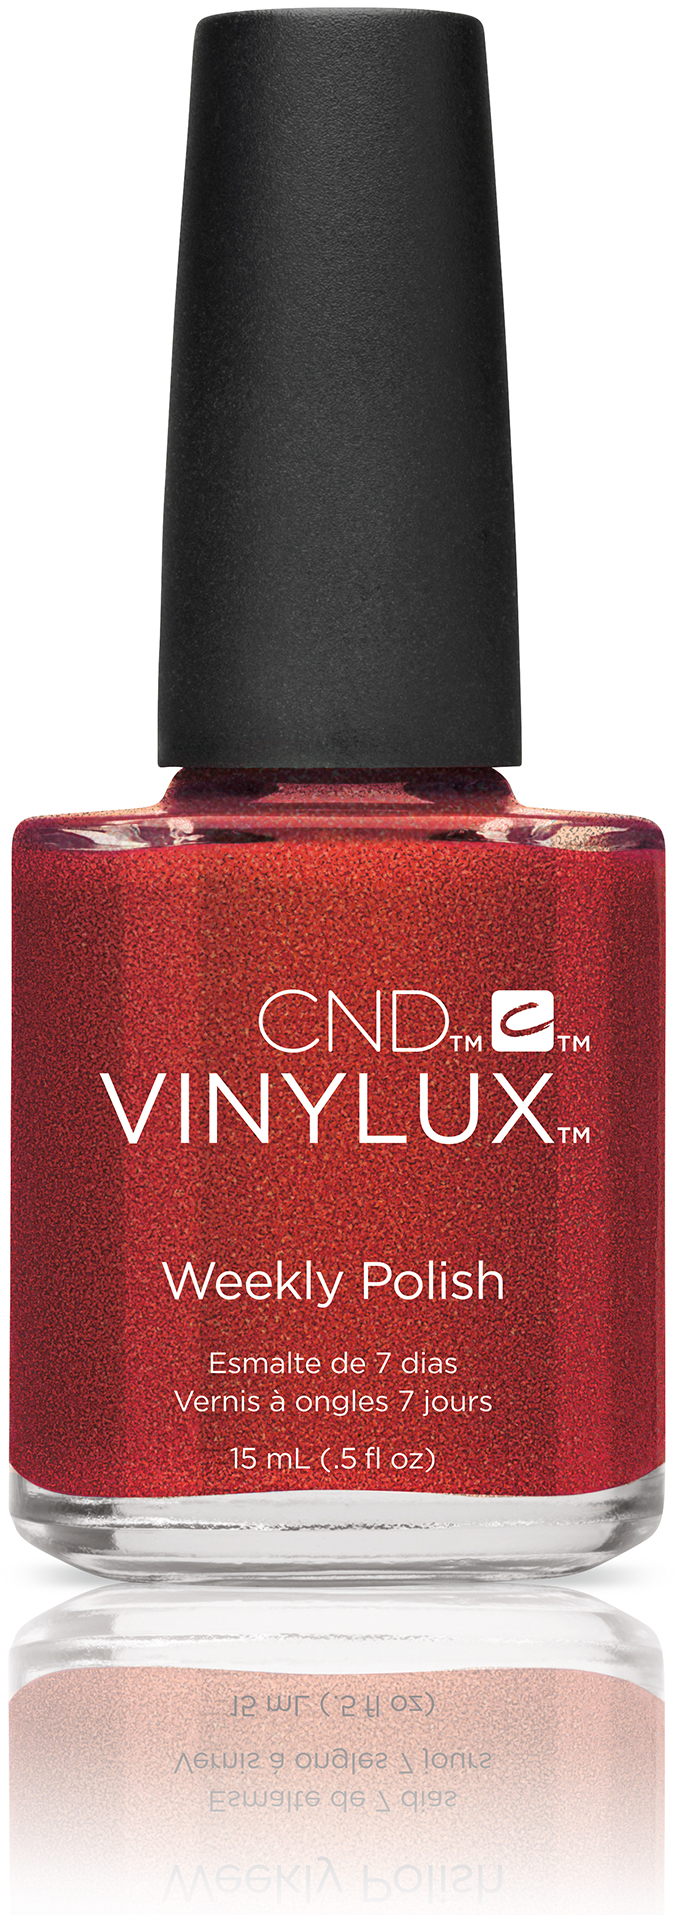 CND Vinylux Craft Culture Collection Hand Fired